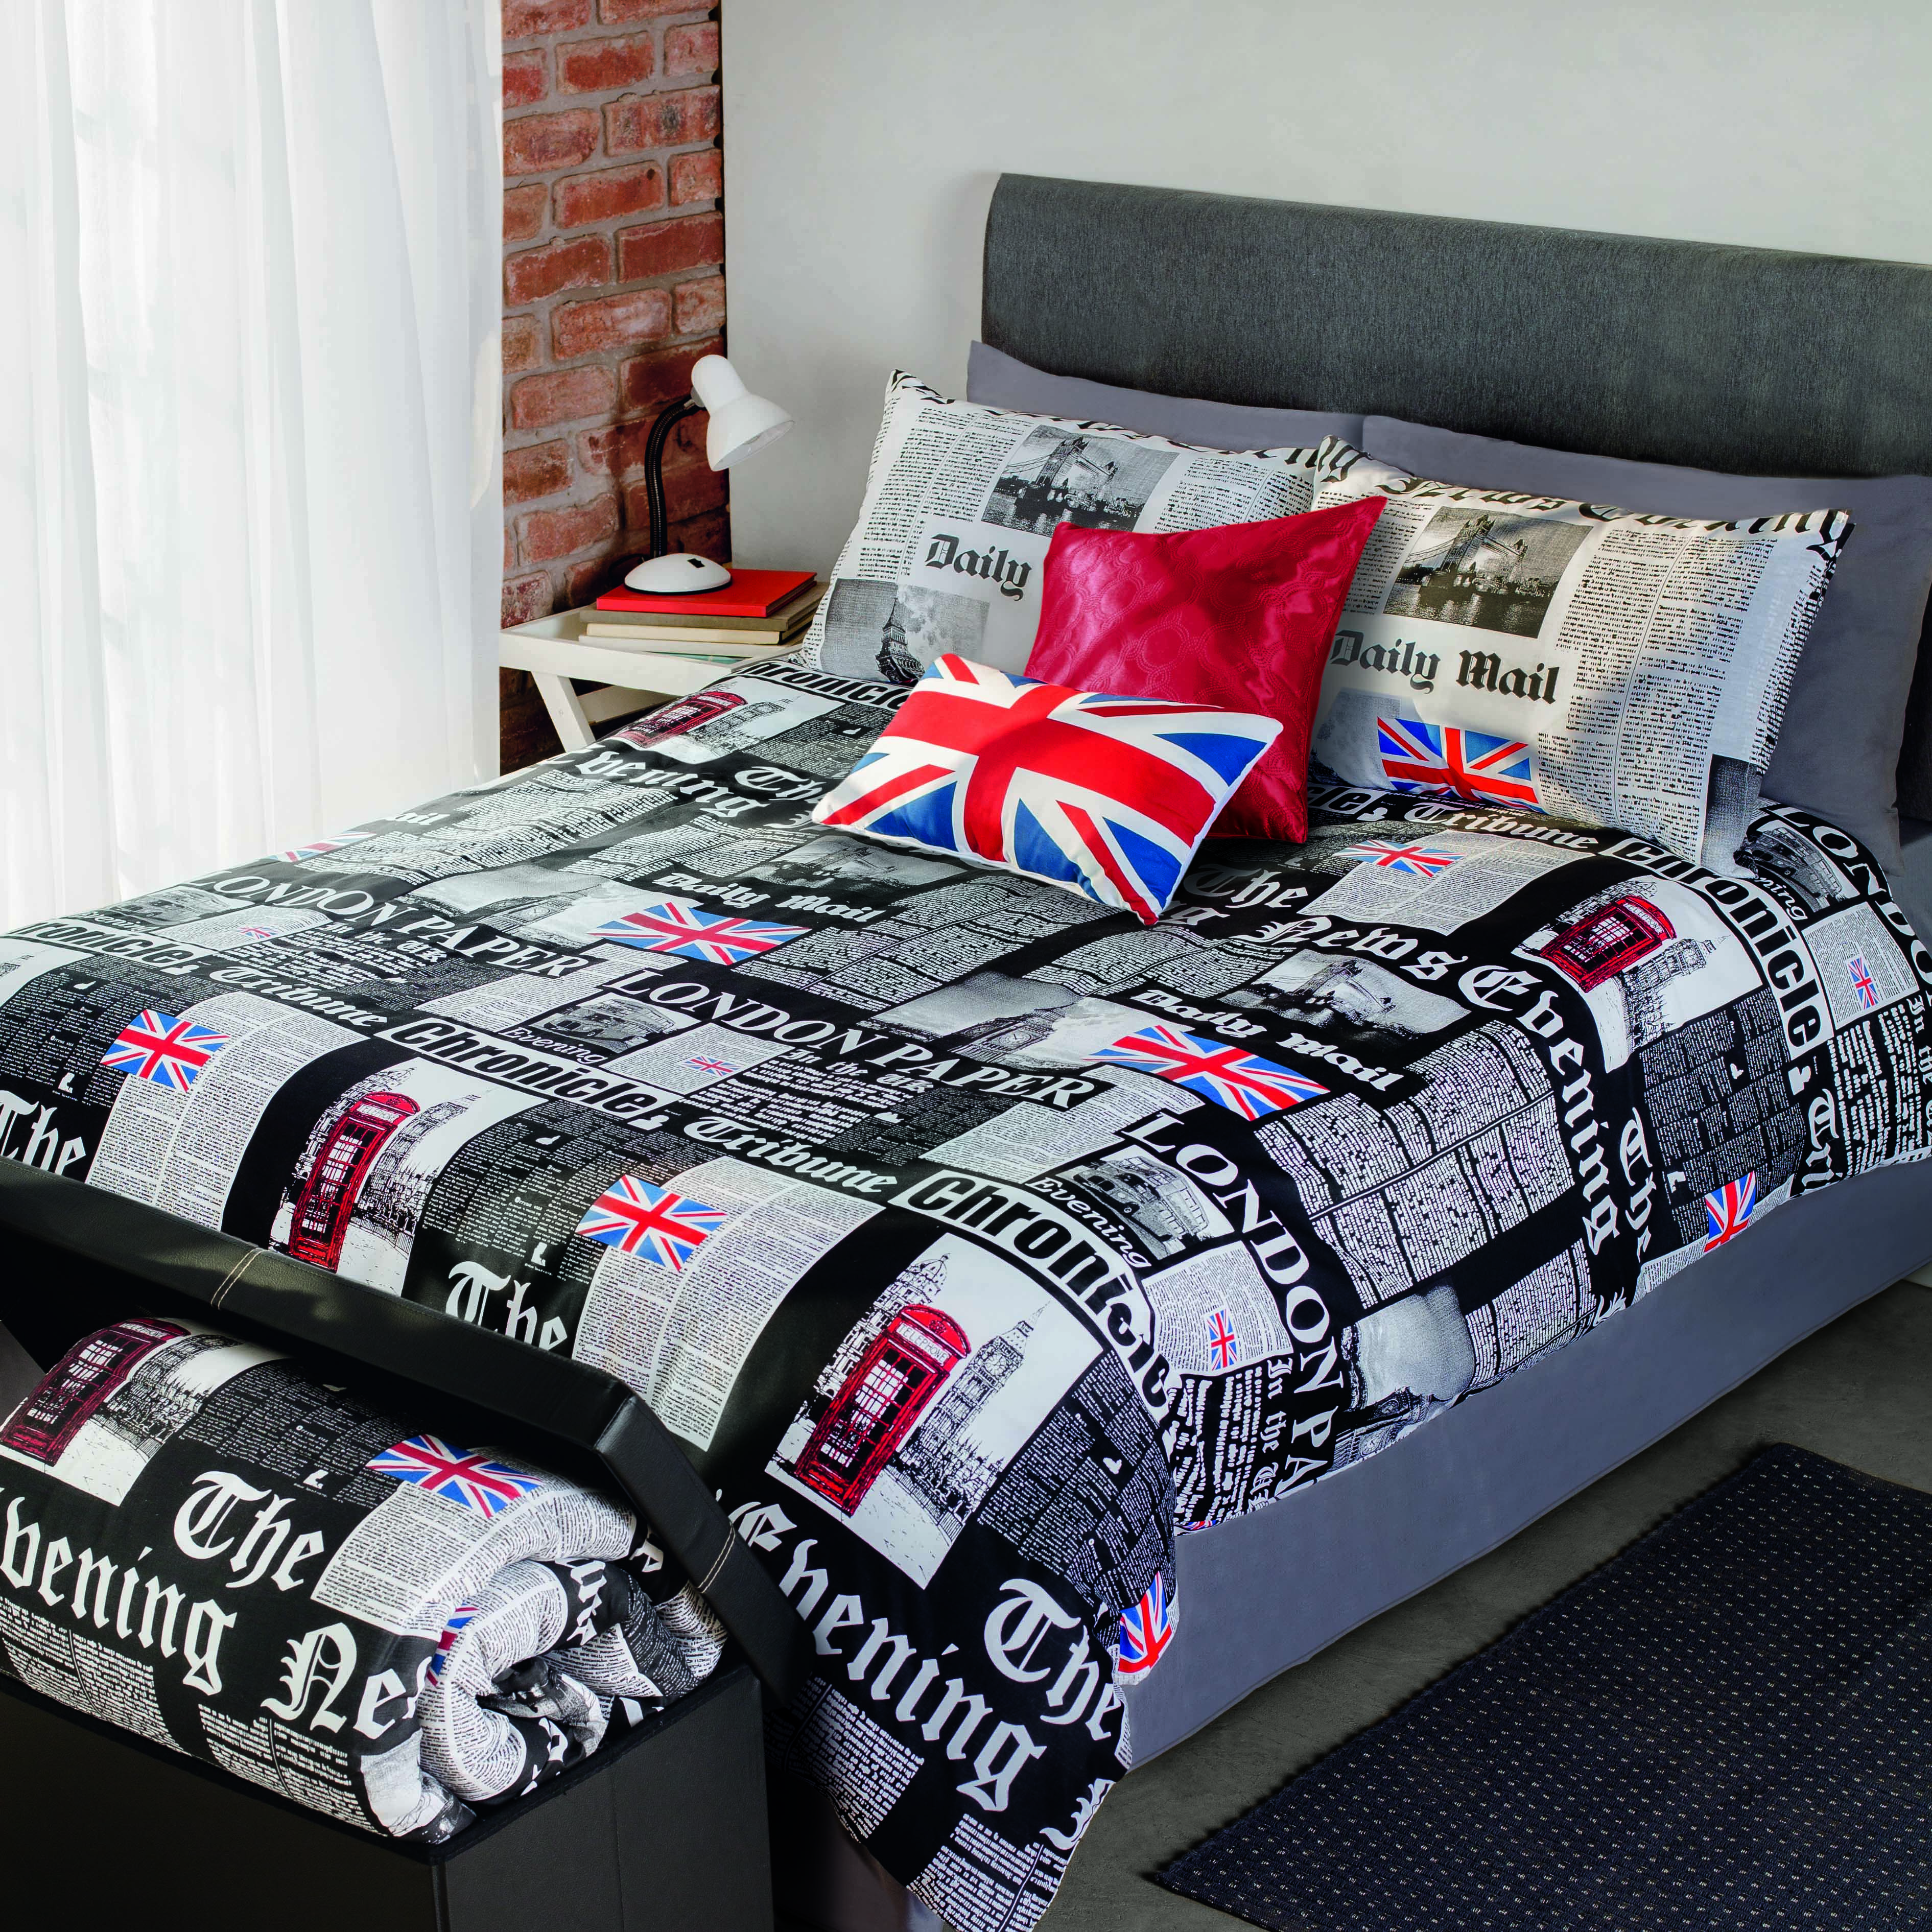 Duvet Covers Comforters Sheet Street Urban Look Pinterest